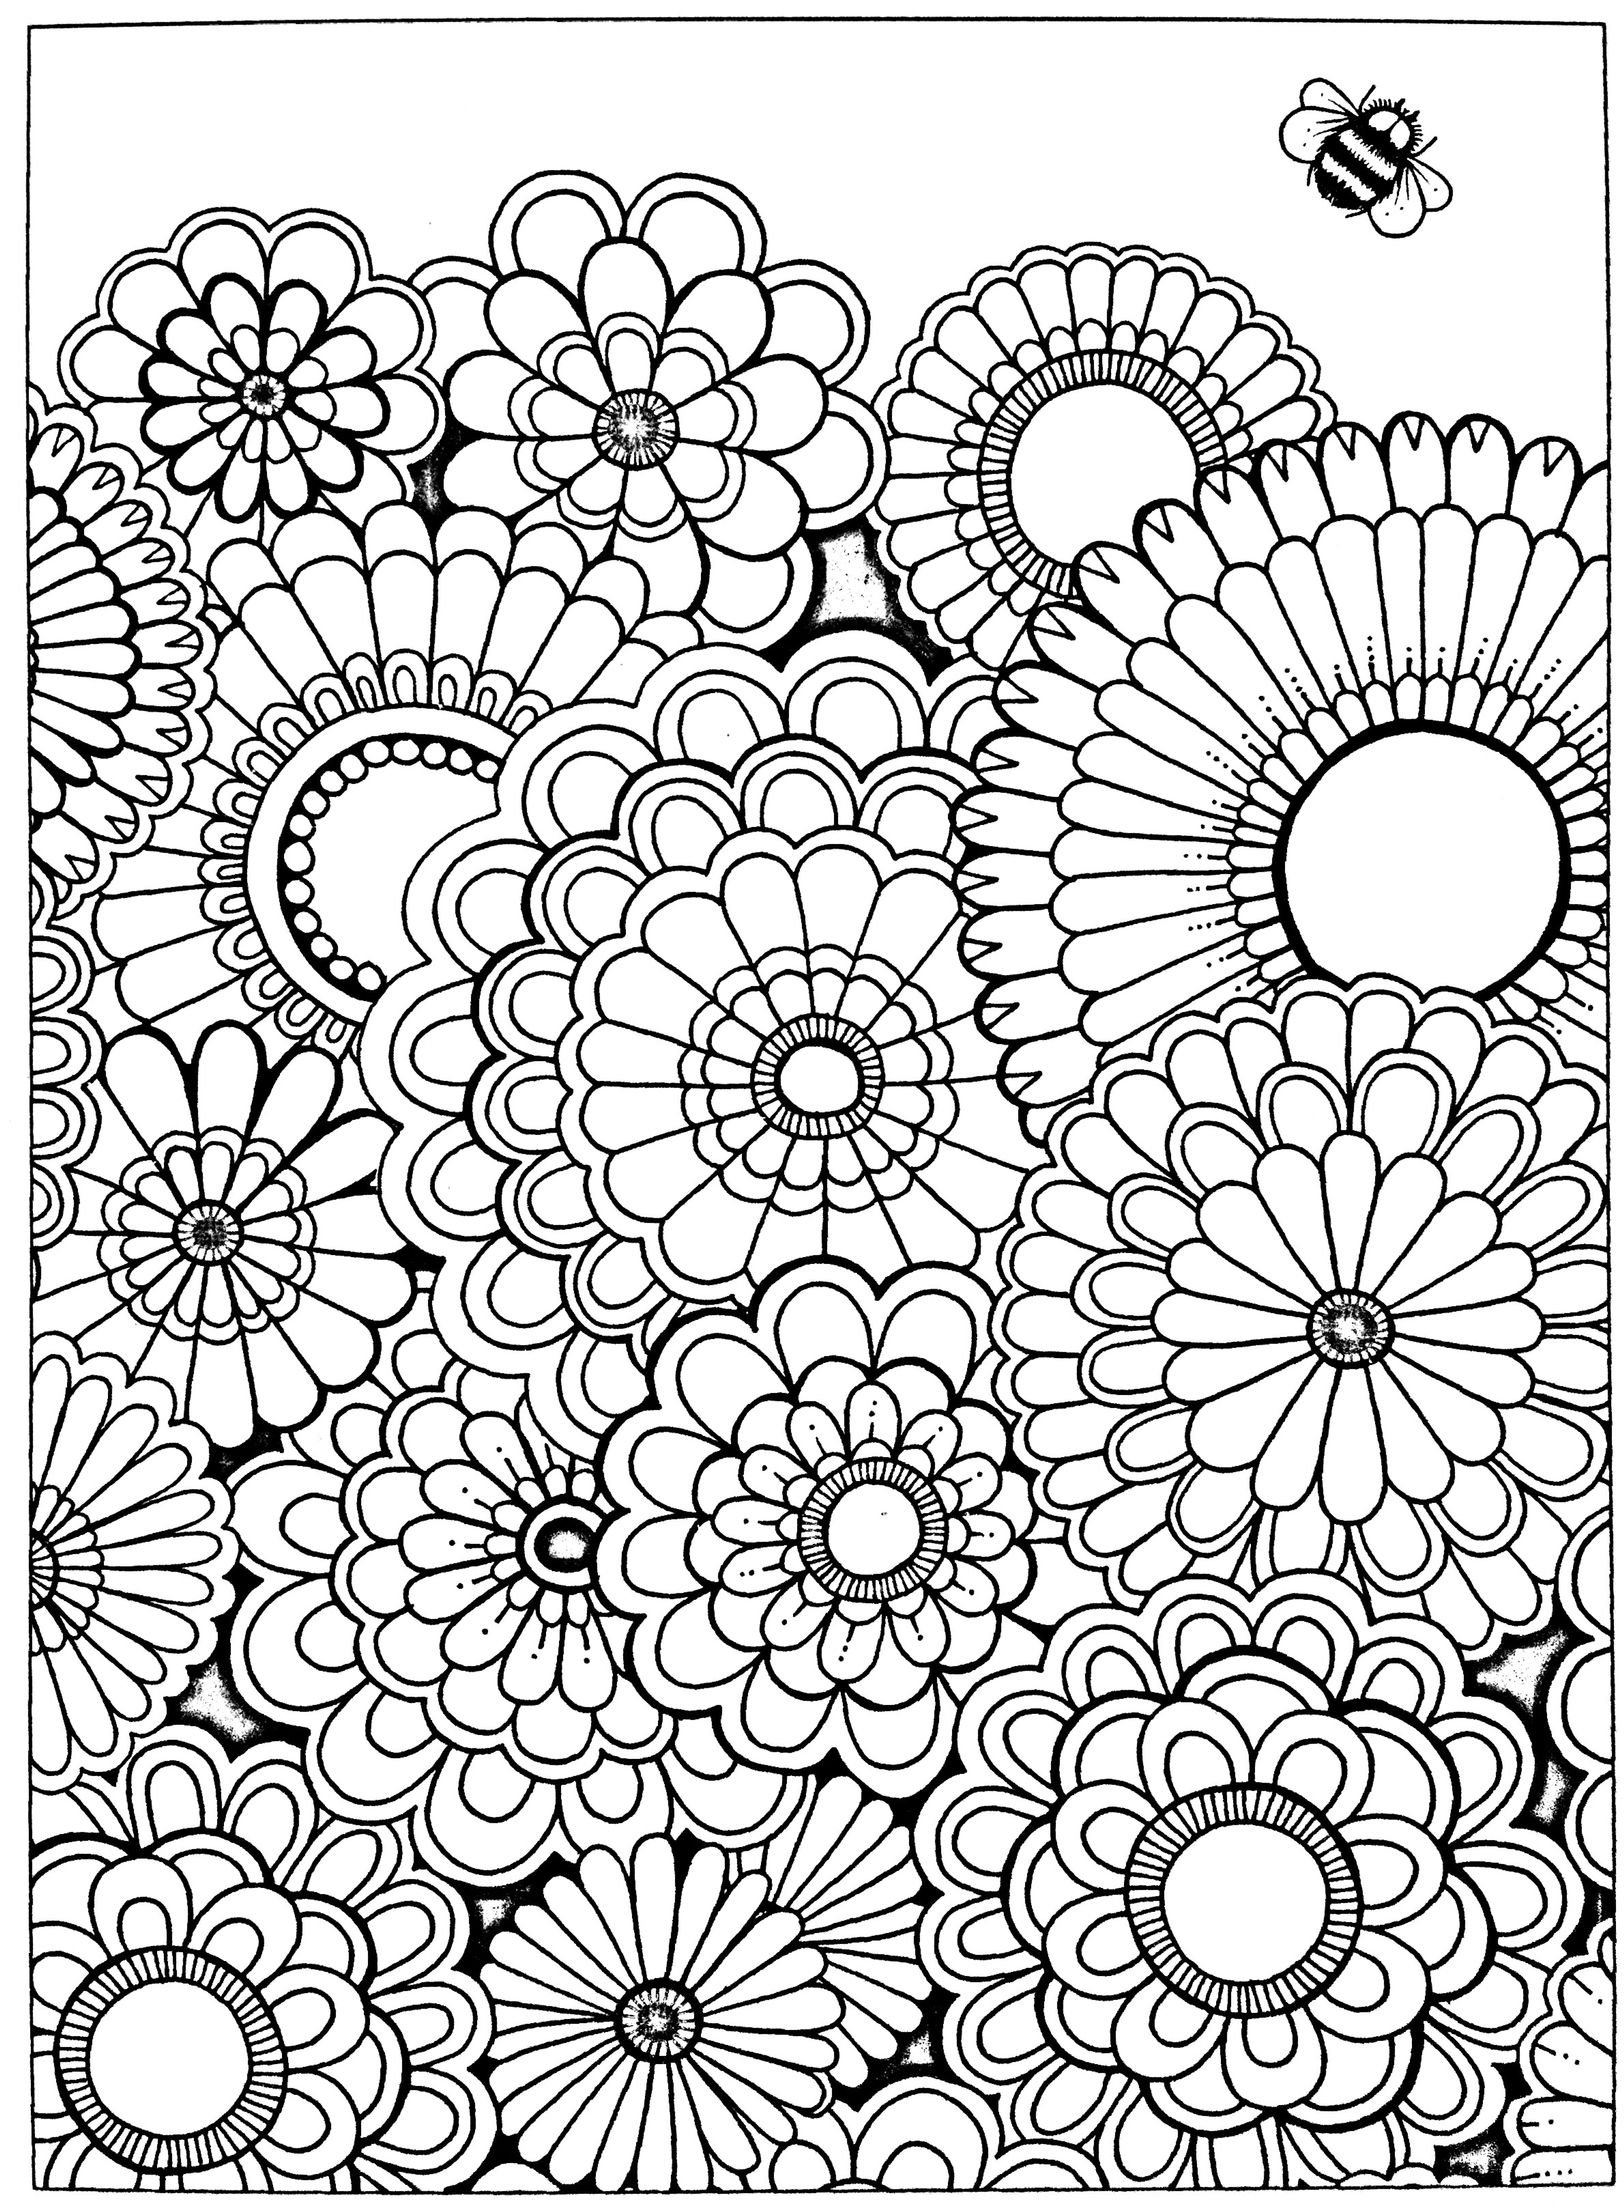 Free adult coloring page Secret Garden Colouring in